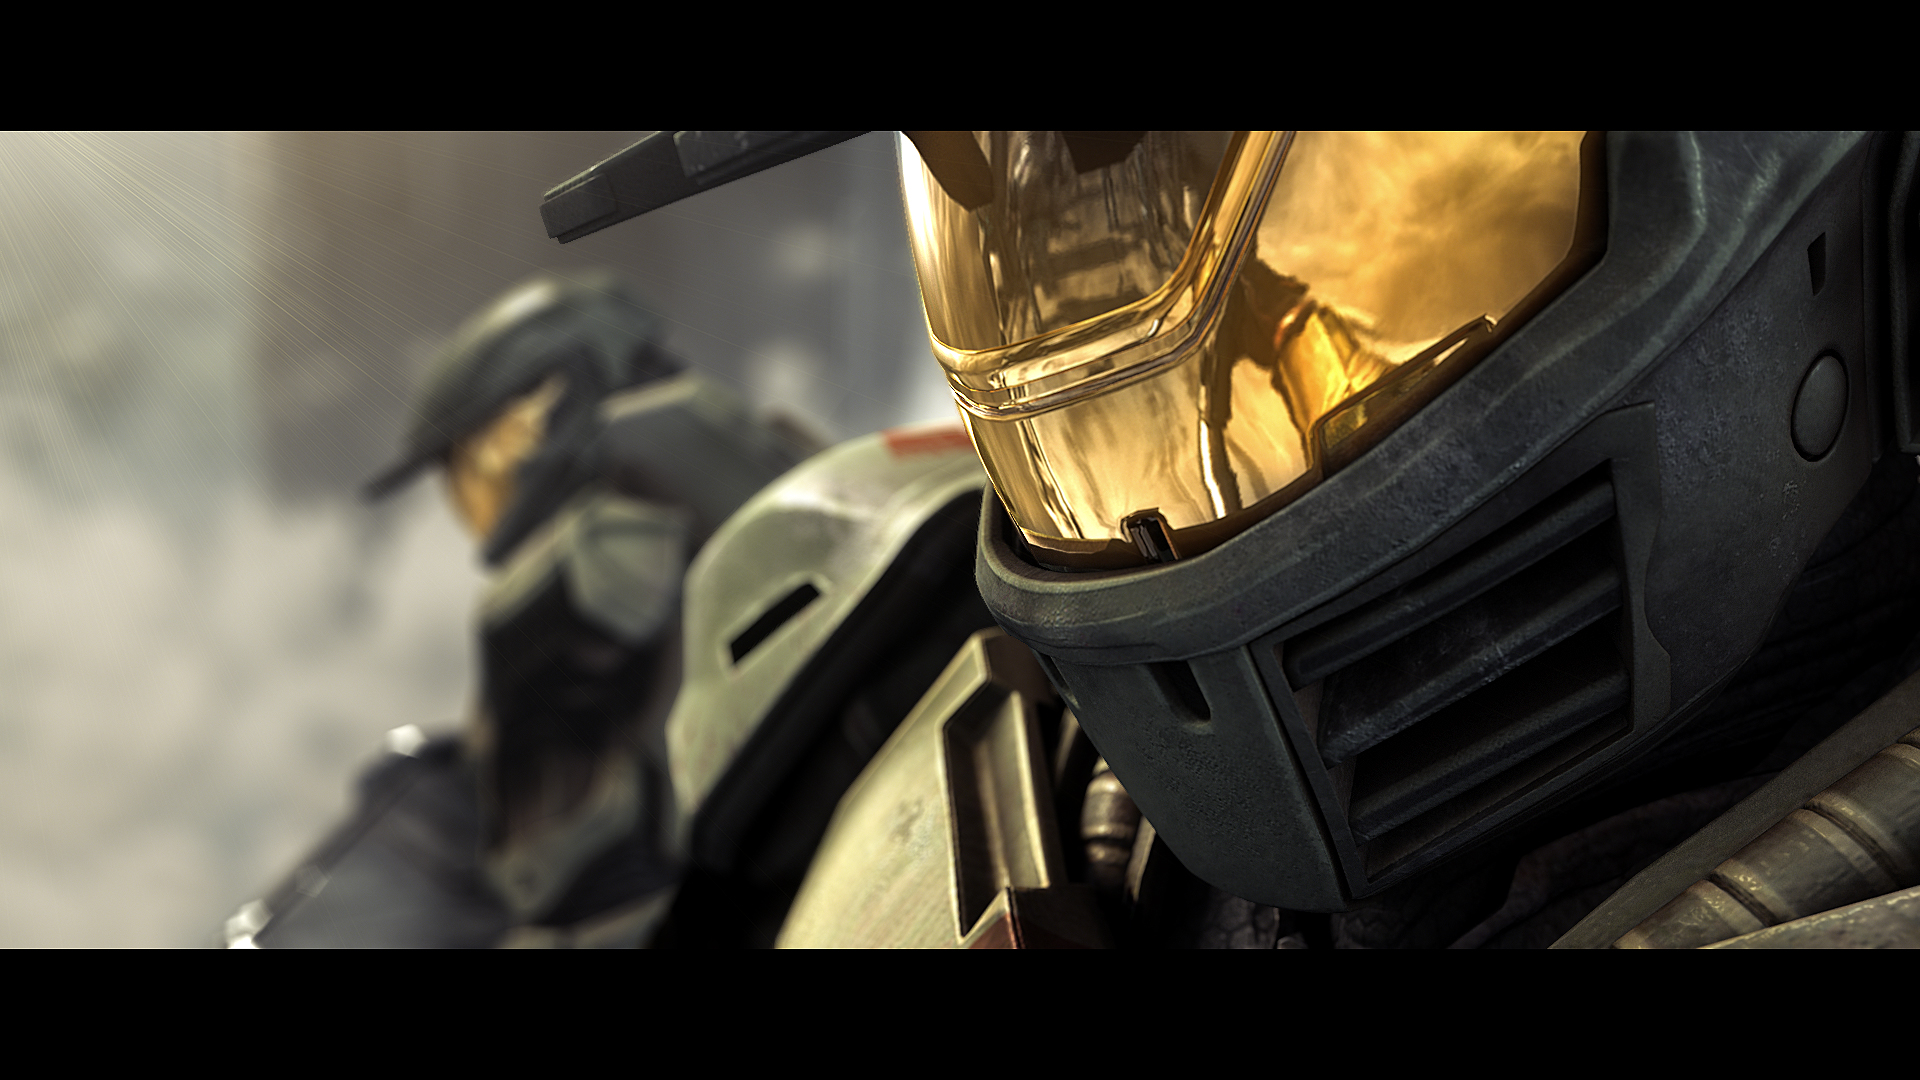 Free Download Halo Master Chief Wallpaper Background 1920x1080